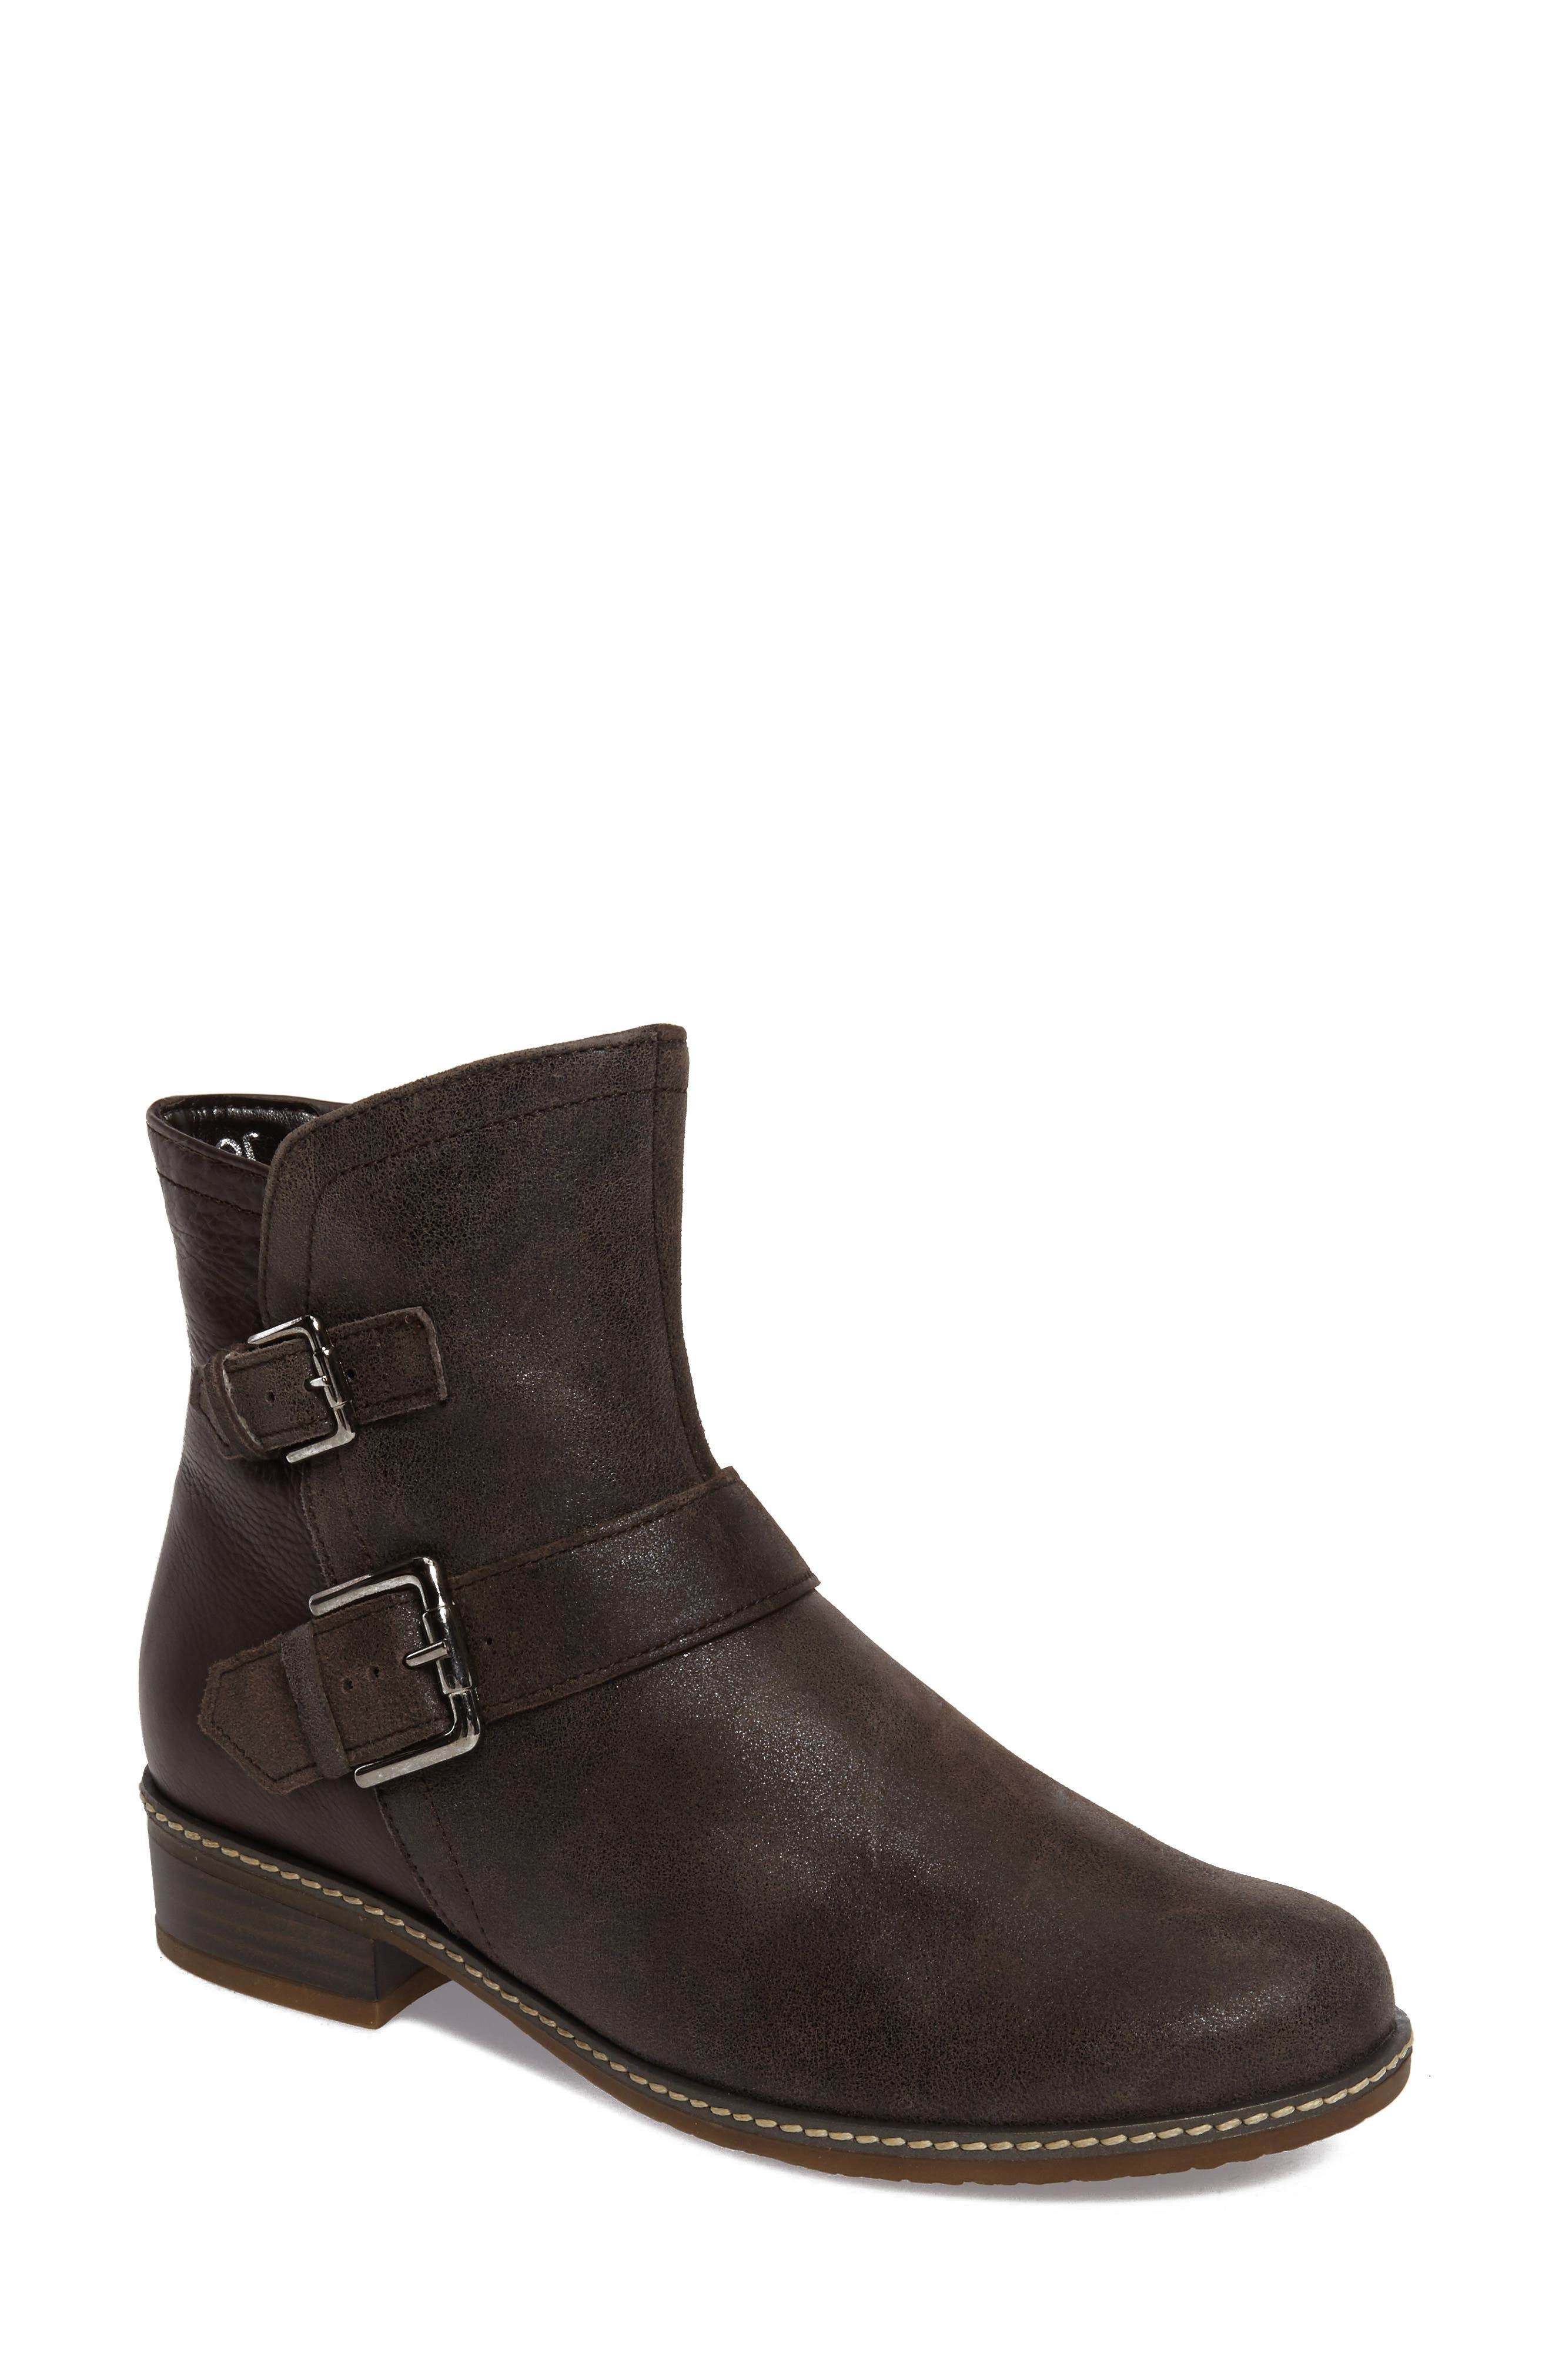 Buckle Bootie,                         Main,                         color, Brown Leather